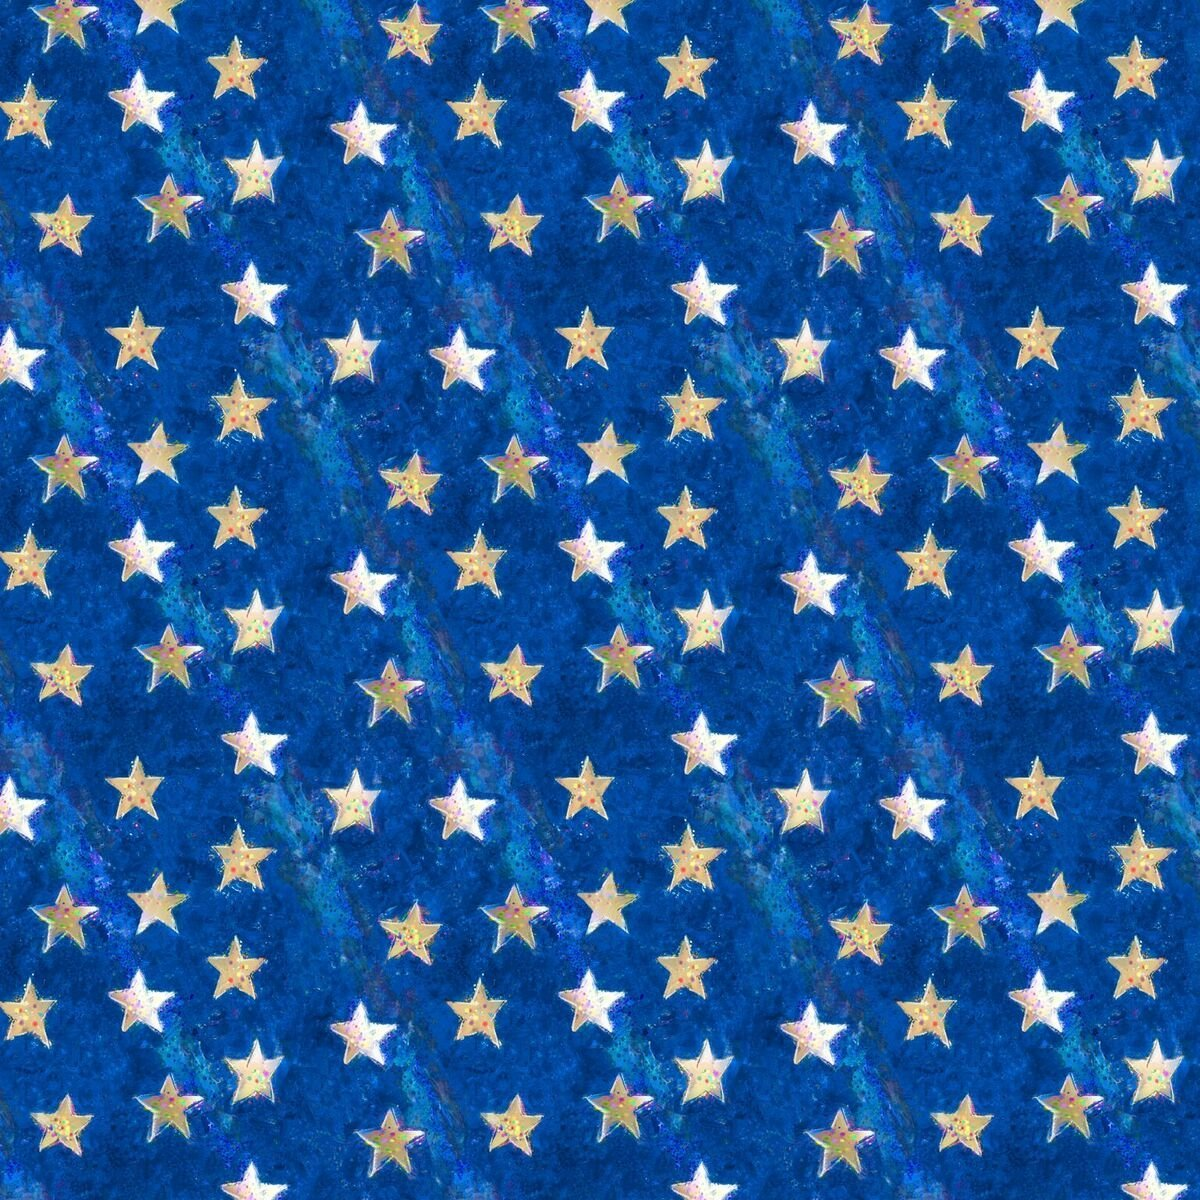 American Icons 14500 Stars on Royal